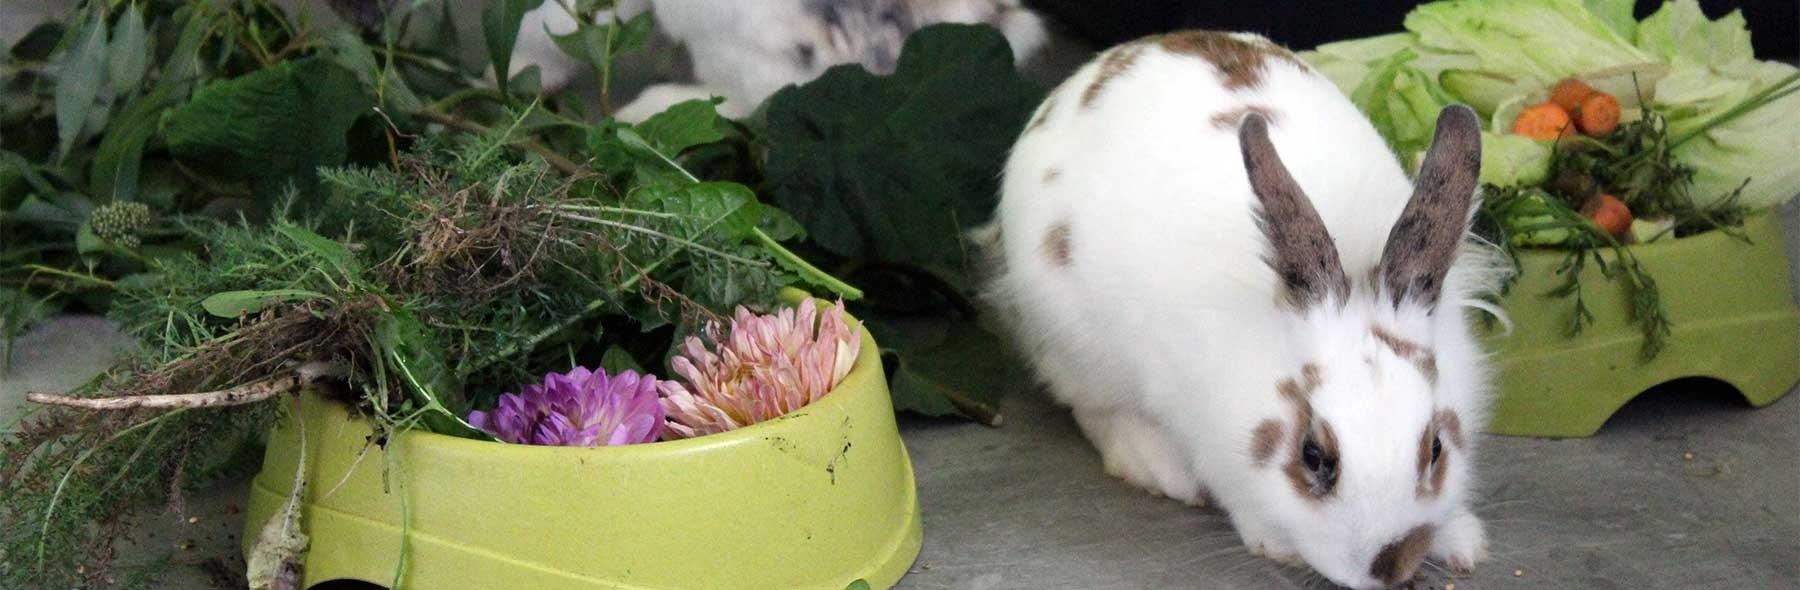 Poisonous Plants – Rabbit Welfare Association & Fund (Rwaf) pertaining to Garden Flowers Harmful To Rabbits